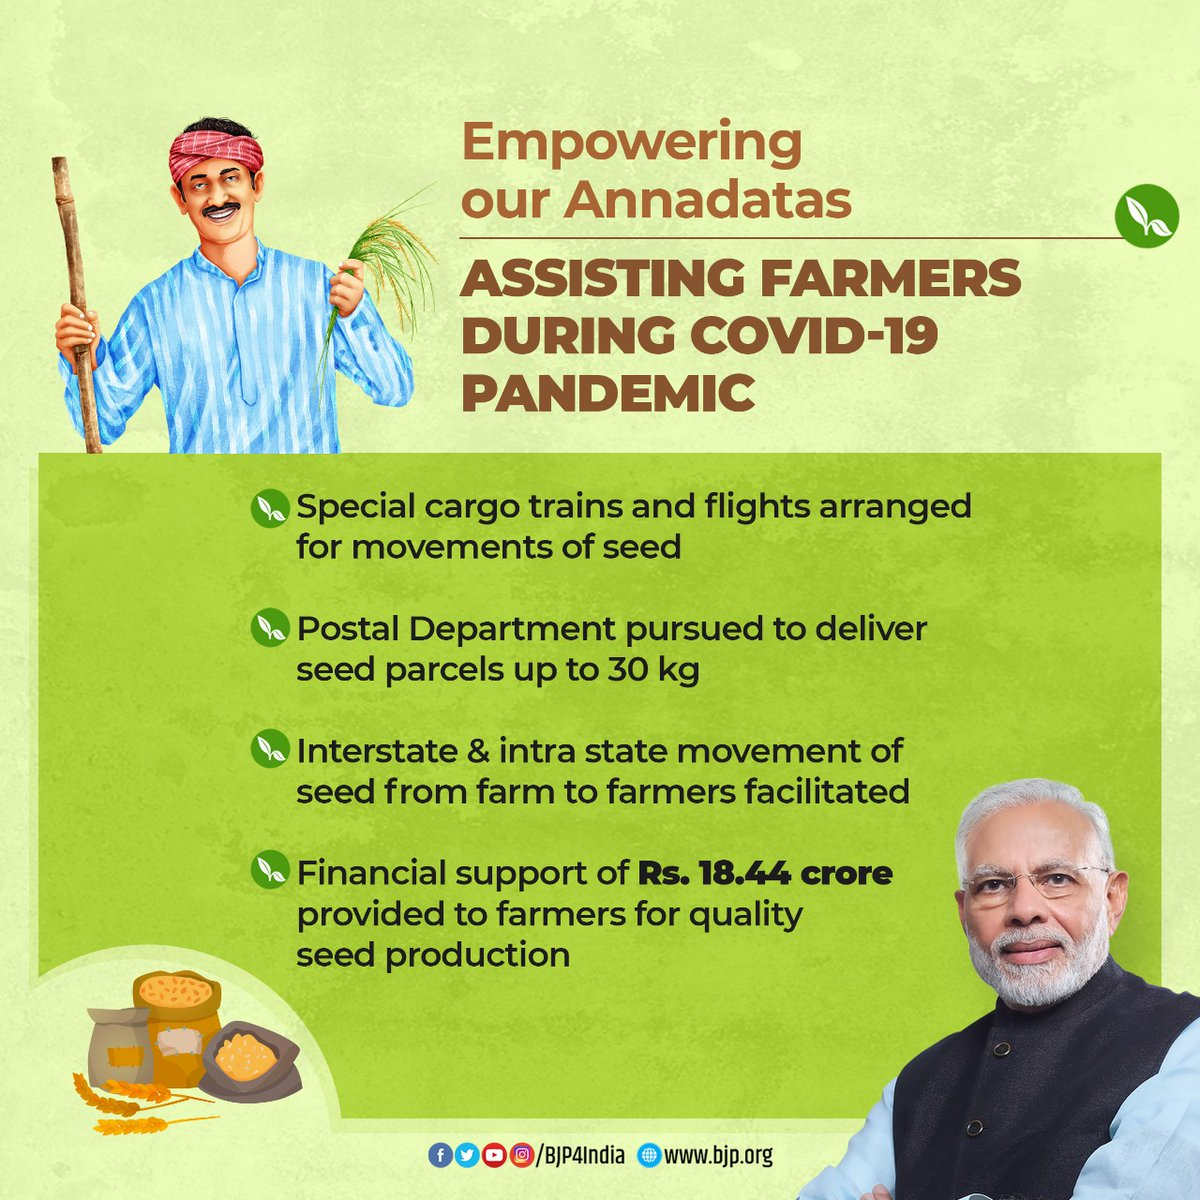 I congratulate & thank PM Shri @narendramodi ji for launching financing facility under Agriculture Infrastructure Fund and releasing benefits under PM-KISAN.   A resolute step towards empowering farmers, giving them due dignity and protecting their livelihood. #AatmaNirbharKrishi